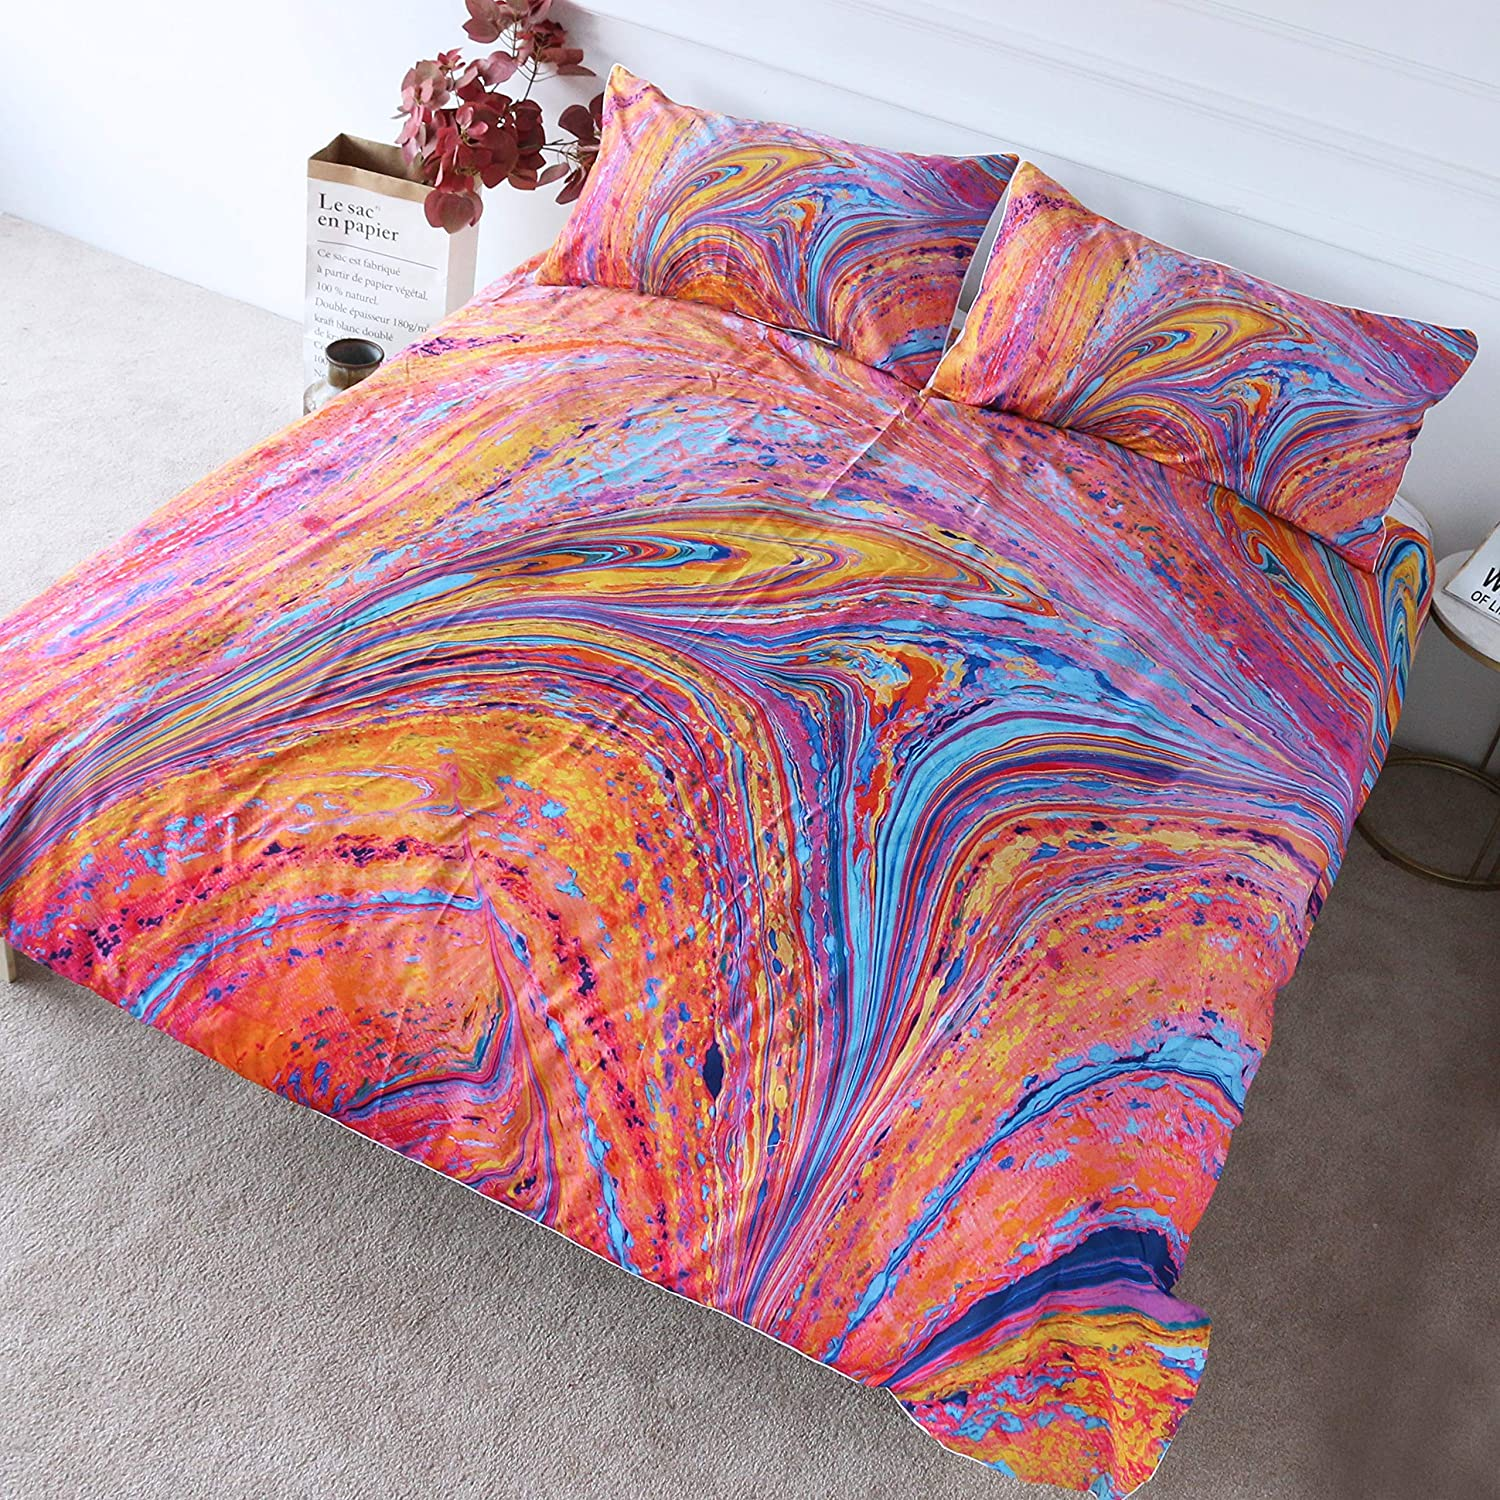 BlessLiving Red Blue Marble Bedding 3 Pieces Flow Fluid Abstract Art Duvet Cover Traditional Orange Marbling Pattern Bed Covers (Twin)